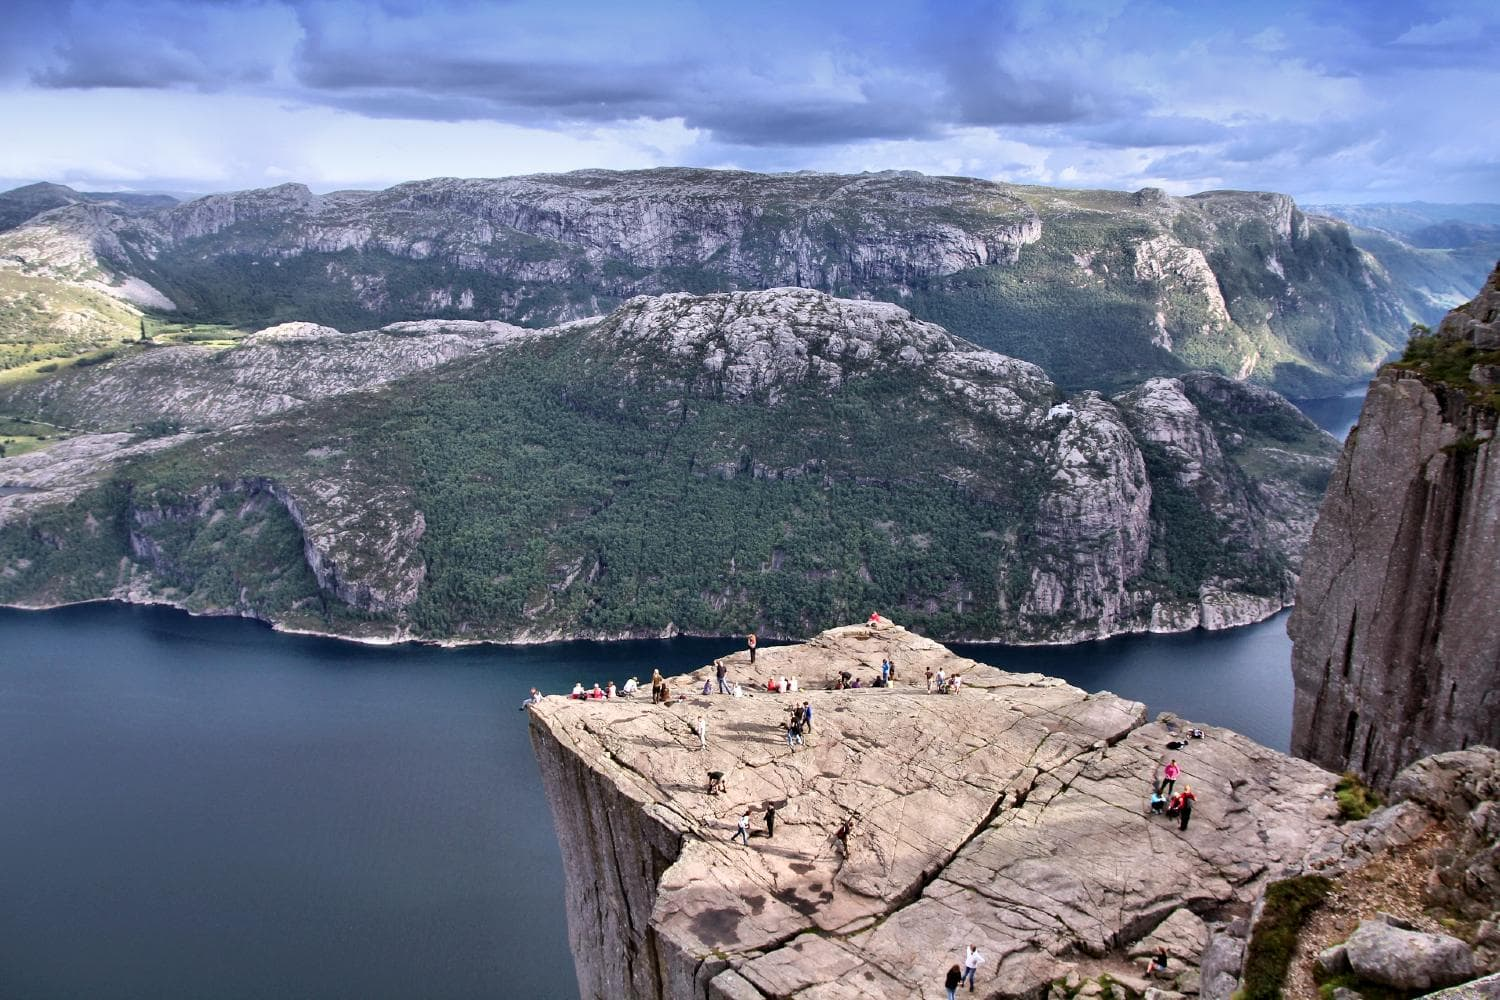 The Pulpit Rock - Preikestolen - from above with people on the rock looking down to Lysefjorden